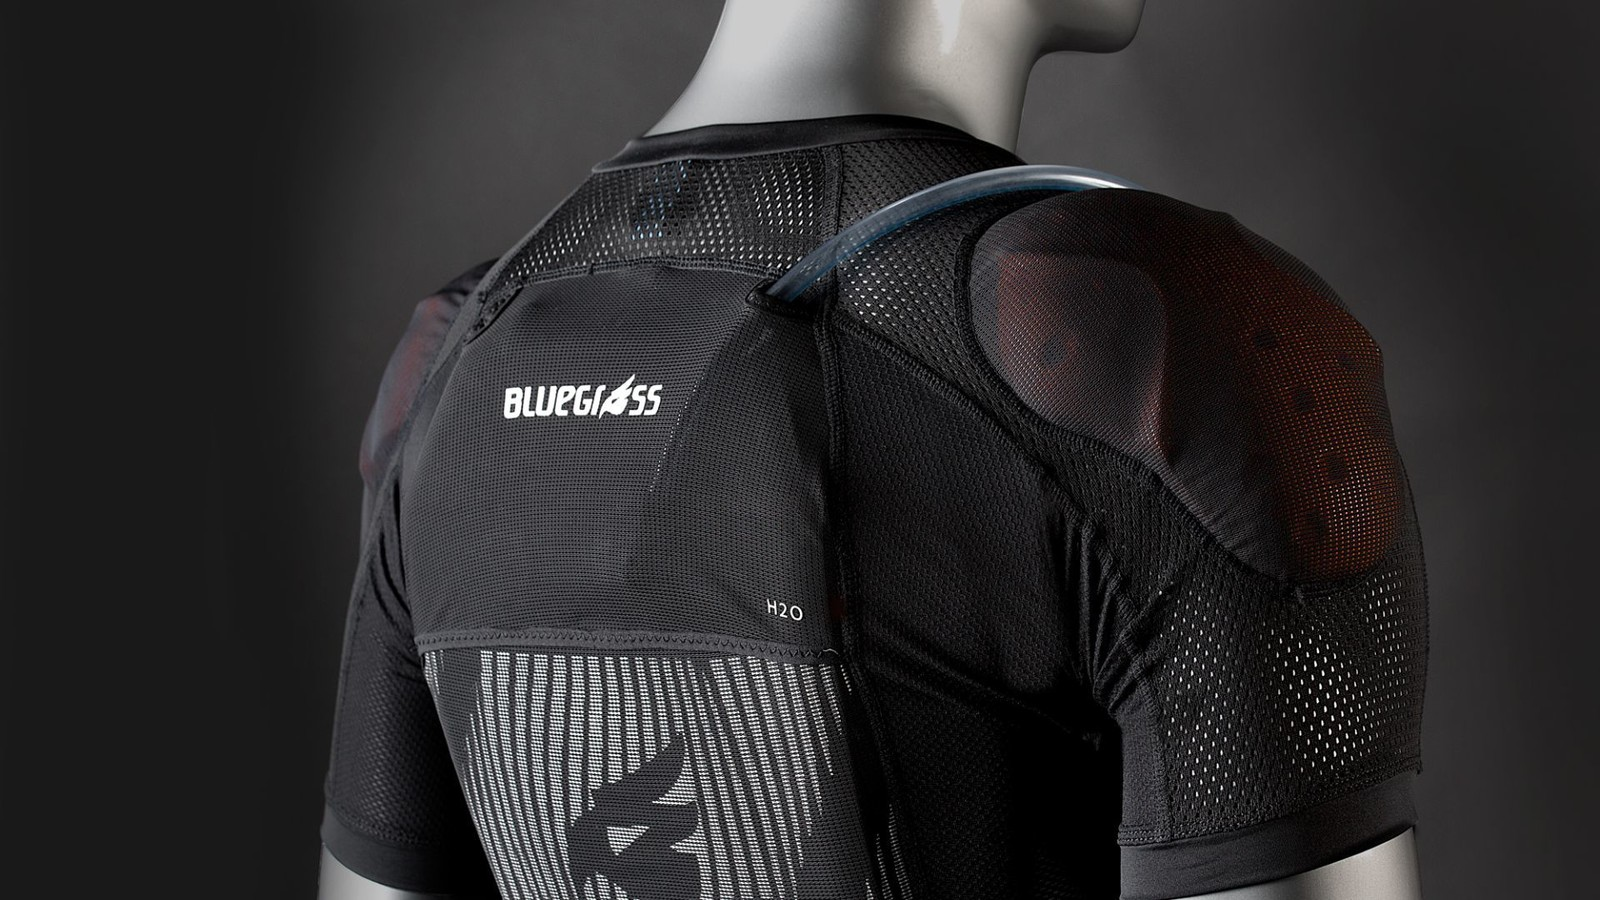 Bluegrass Introduces Two New Upper Body Protectors